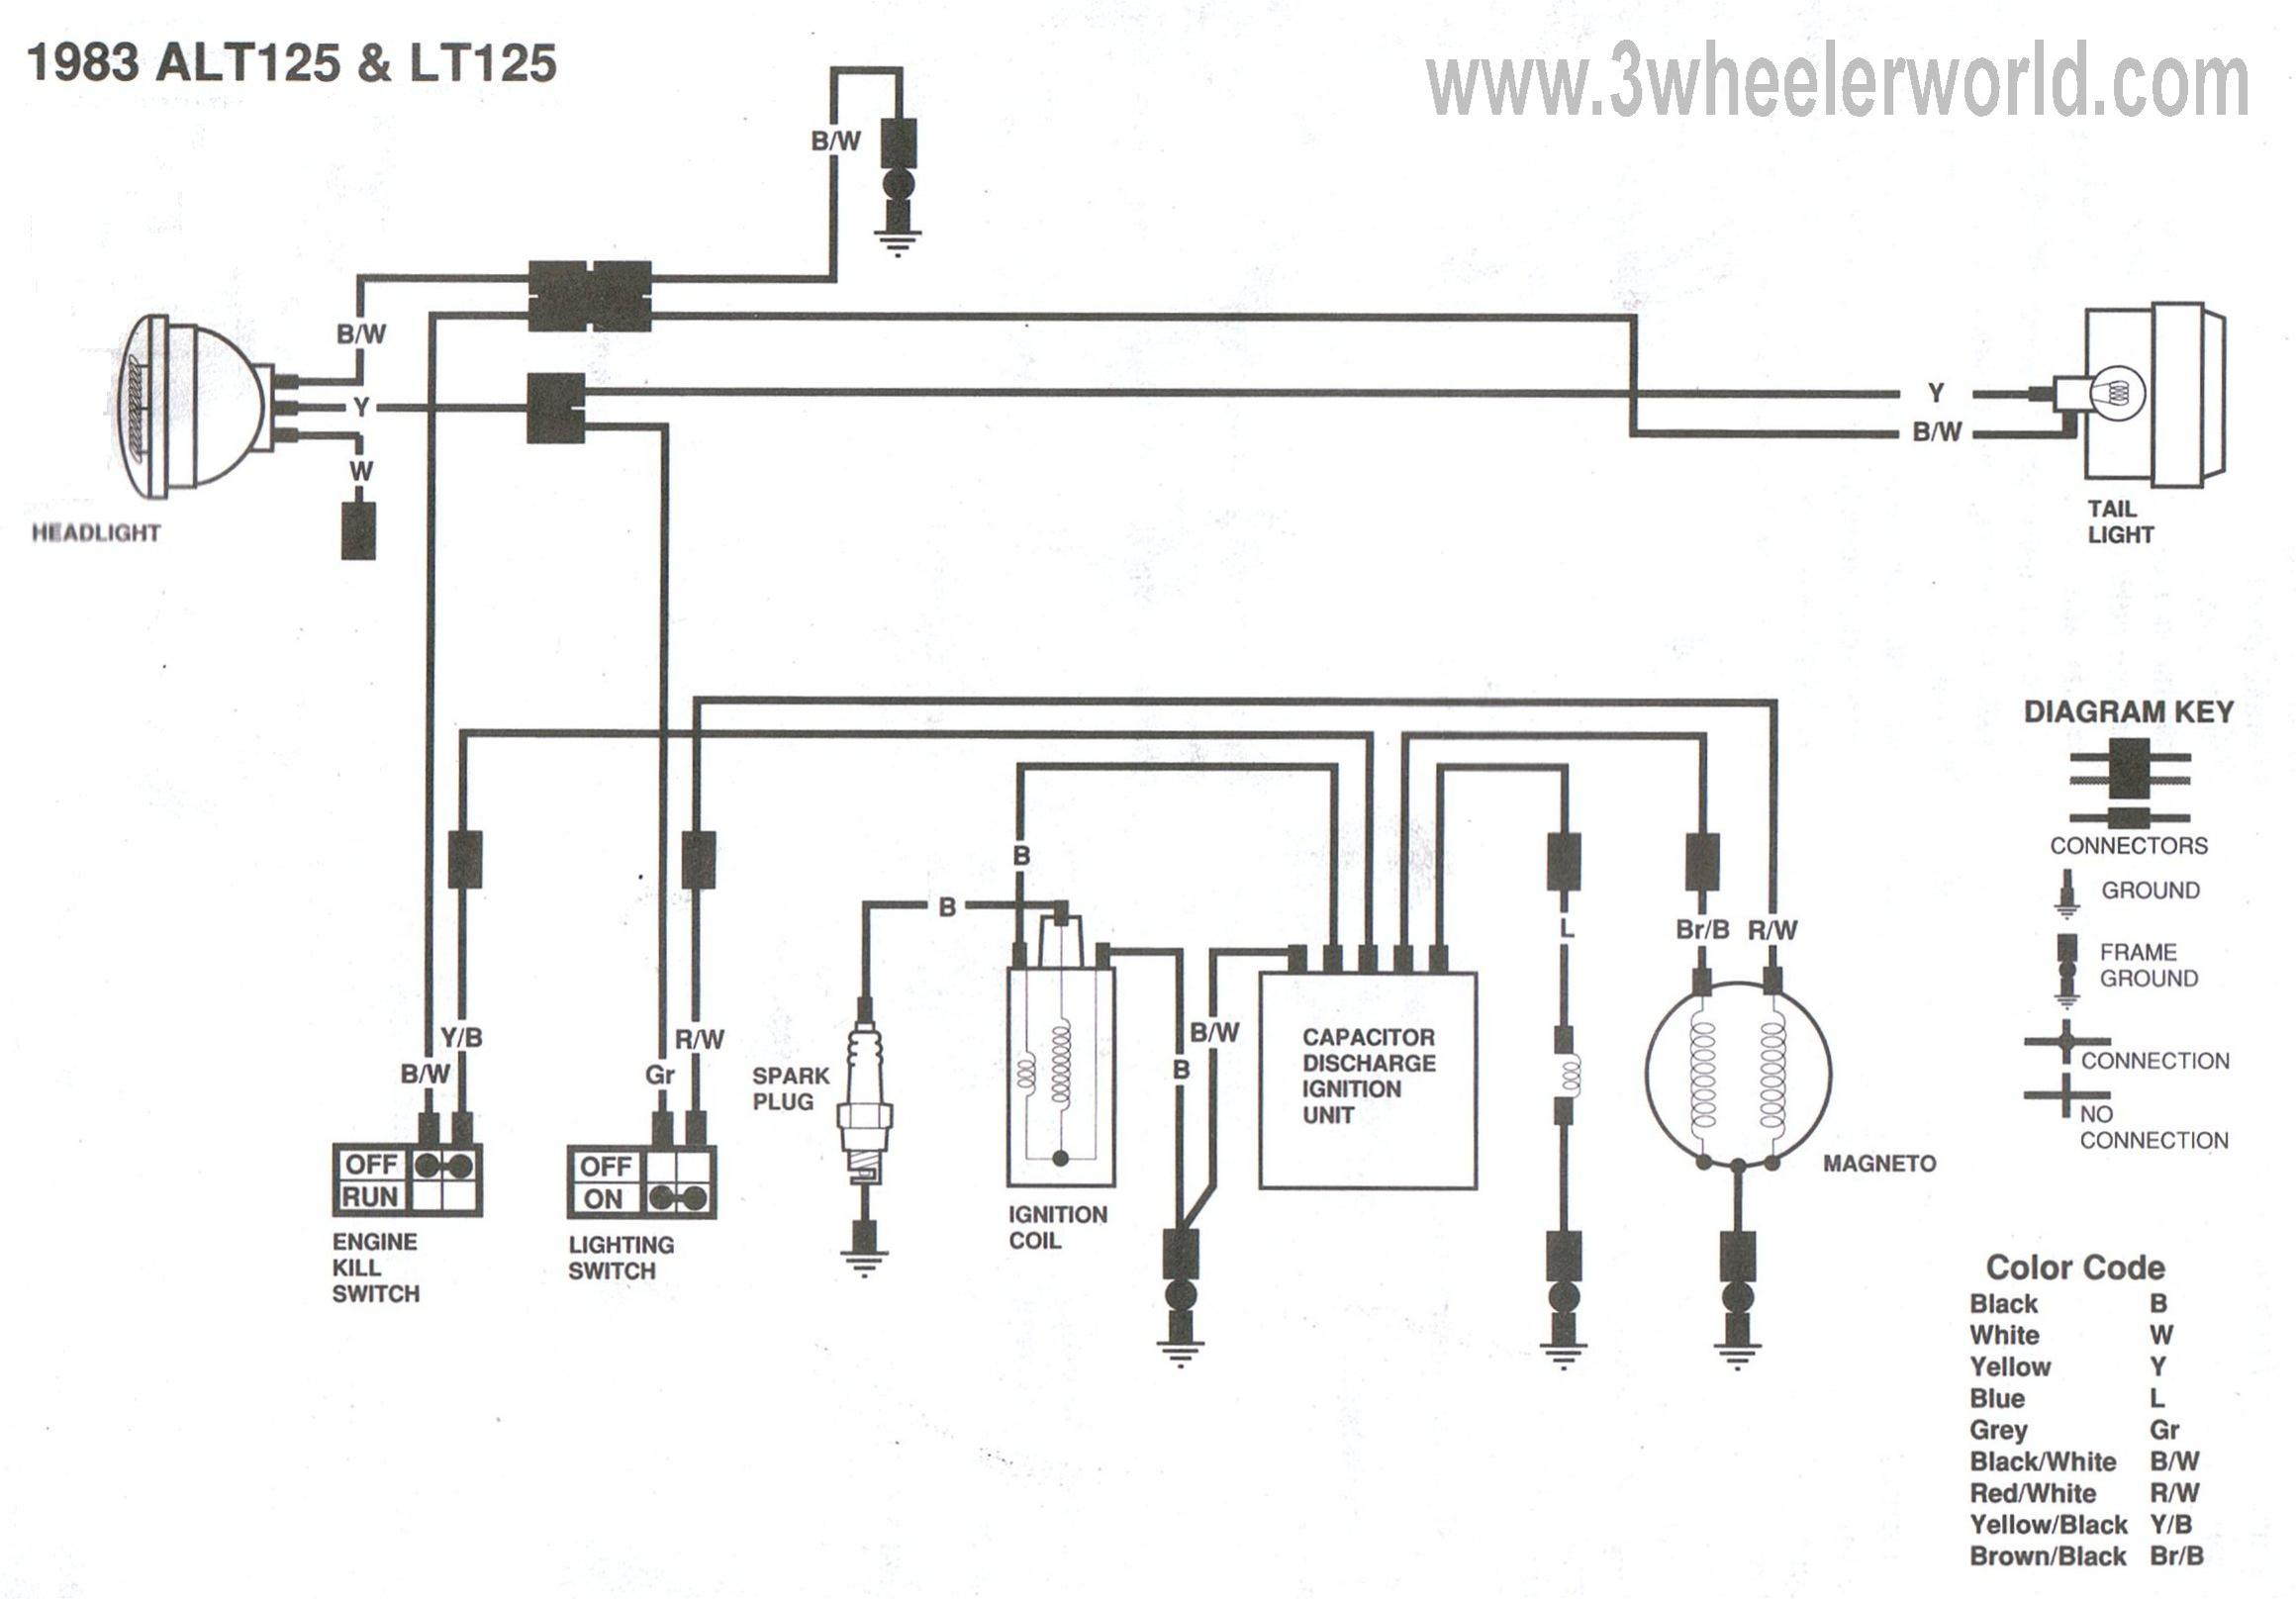 3WHeeLeR WoRLD - Suzuki wiring diagrams